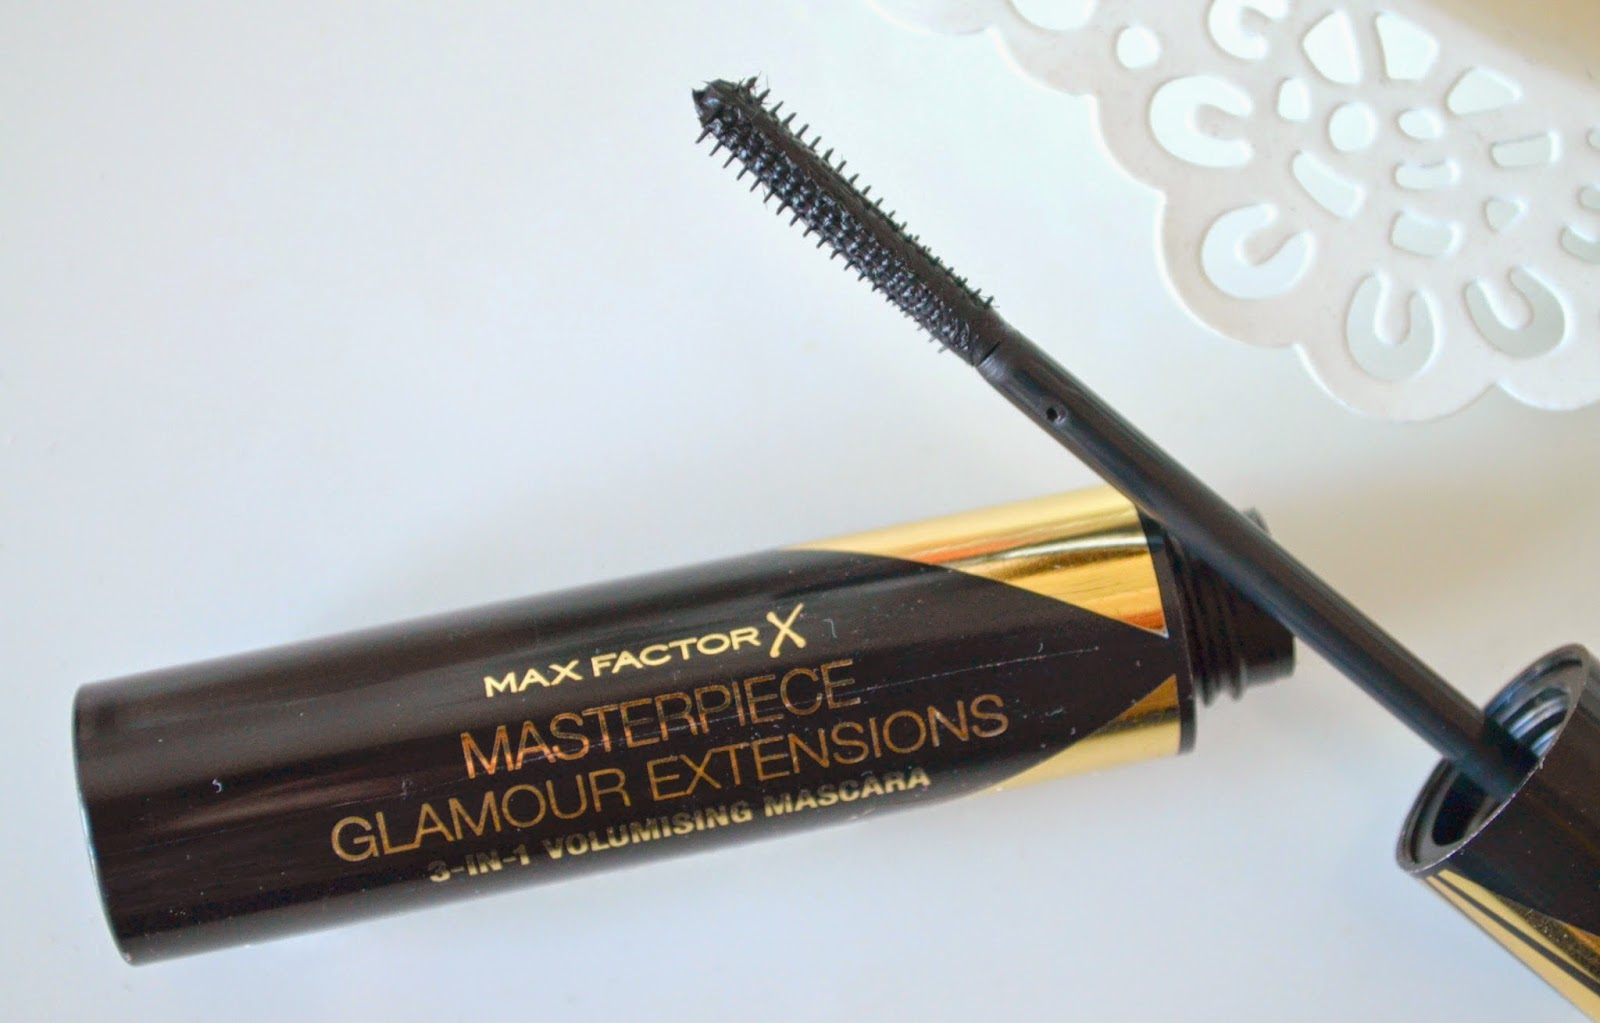 Max Factor Glamour Extension 3-in-1 Mascara